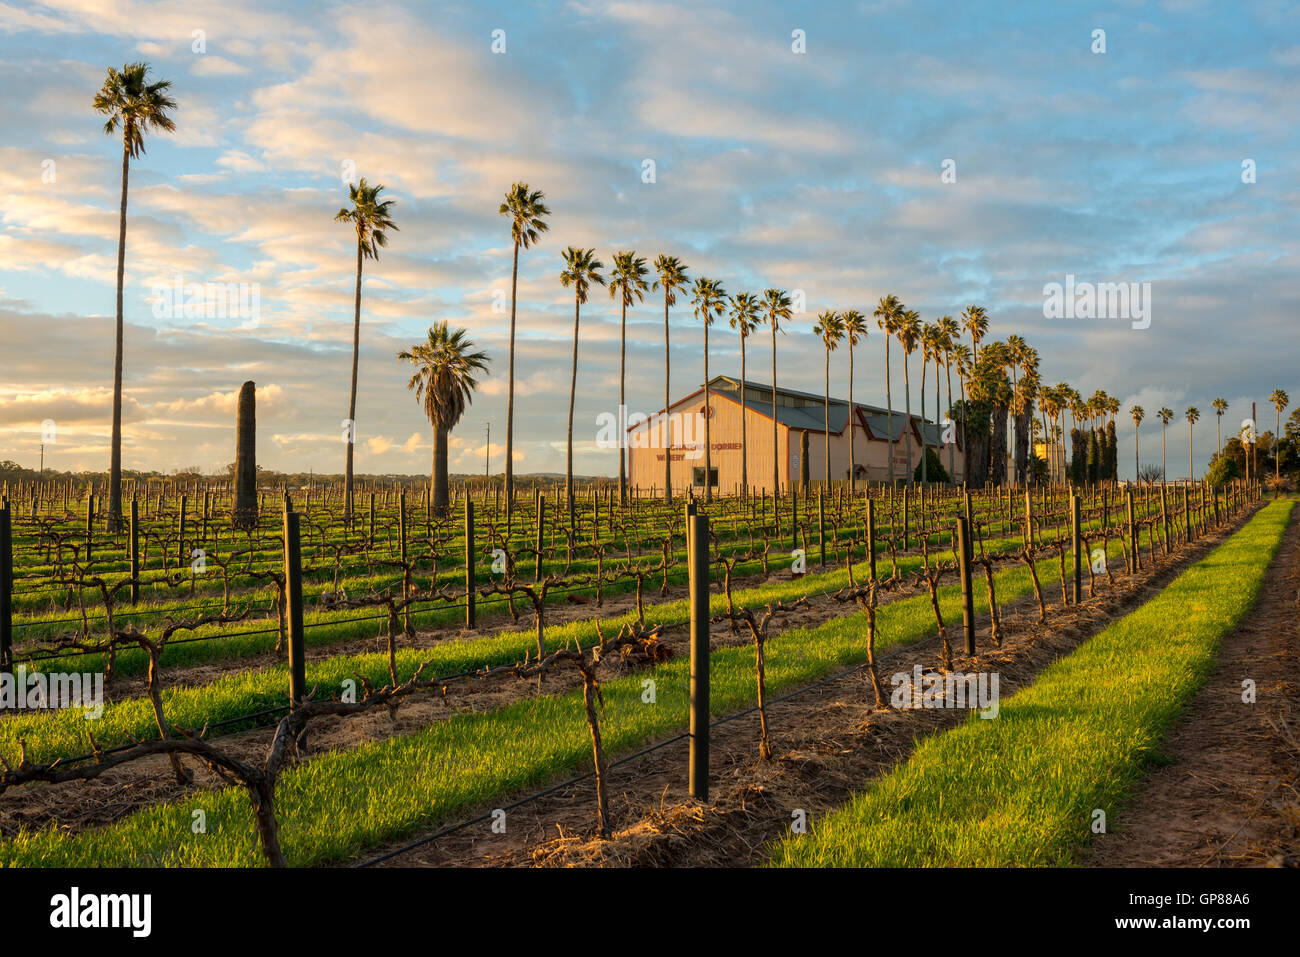 A Tanunda winery and vineyard at sunset in the Barossa Valley Australia - Stock Image